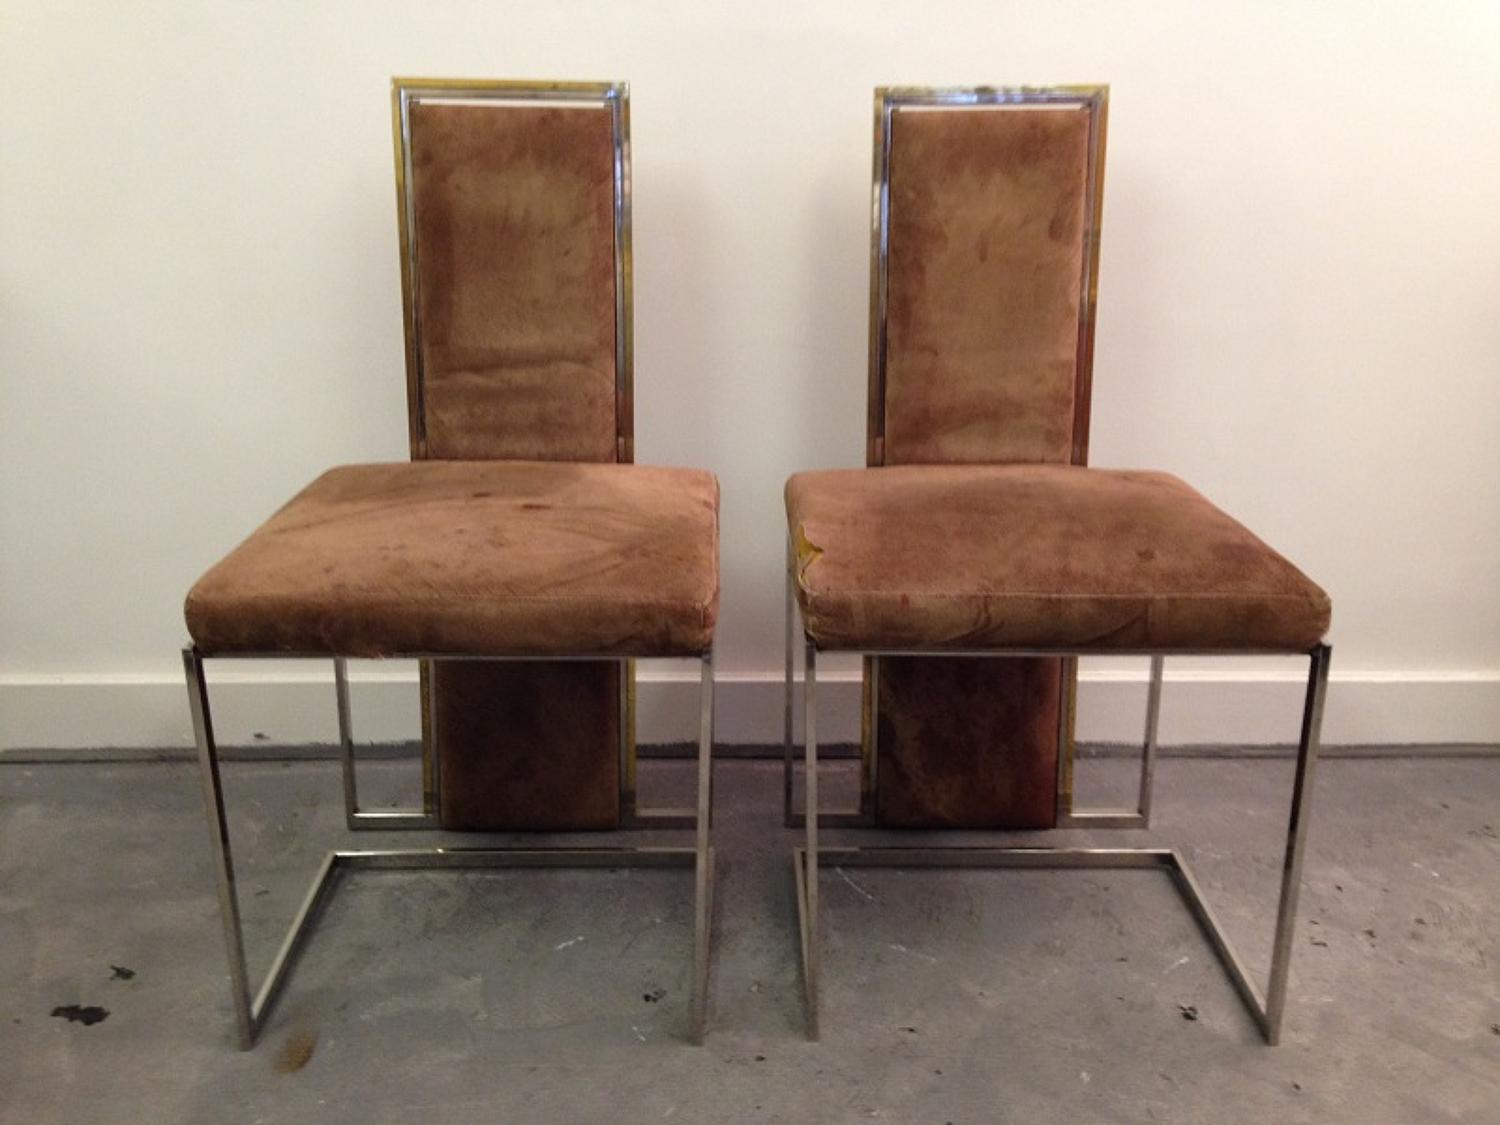 A set of four chrome and gilt metal dining chairs